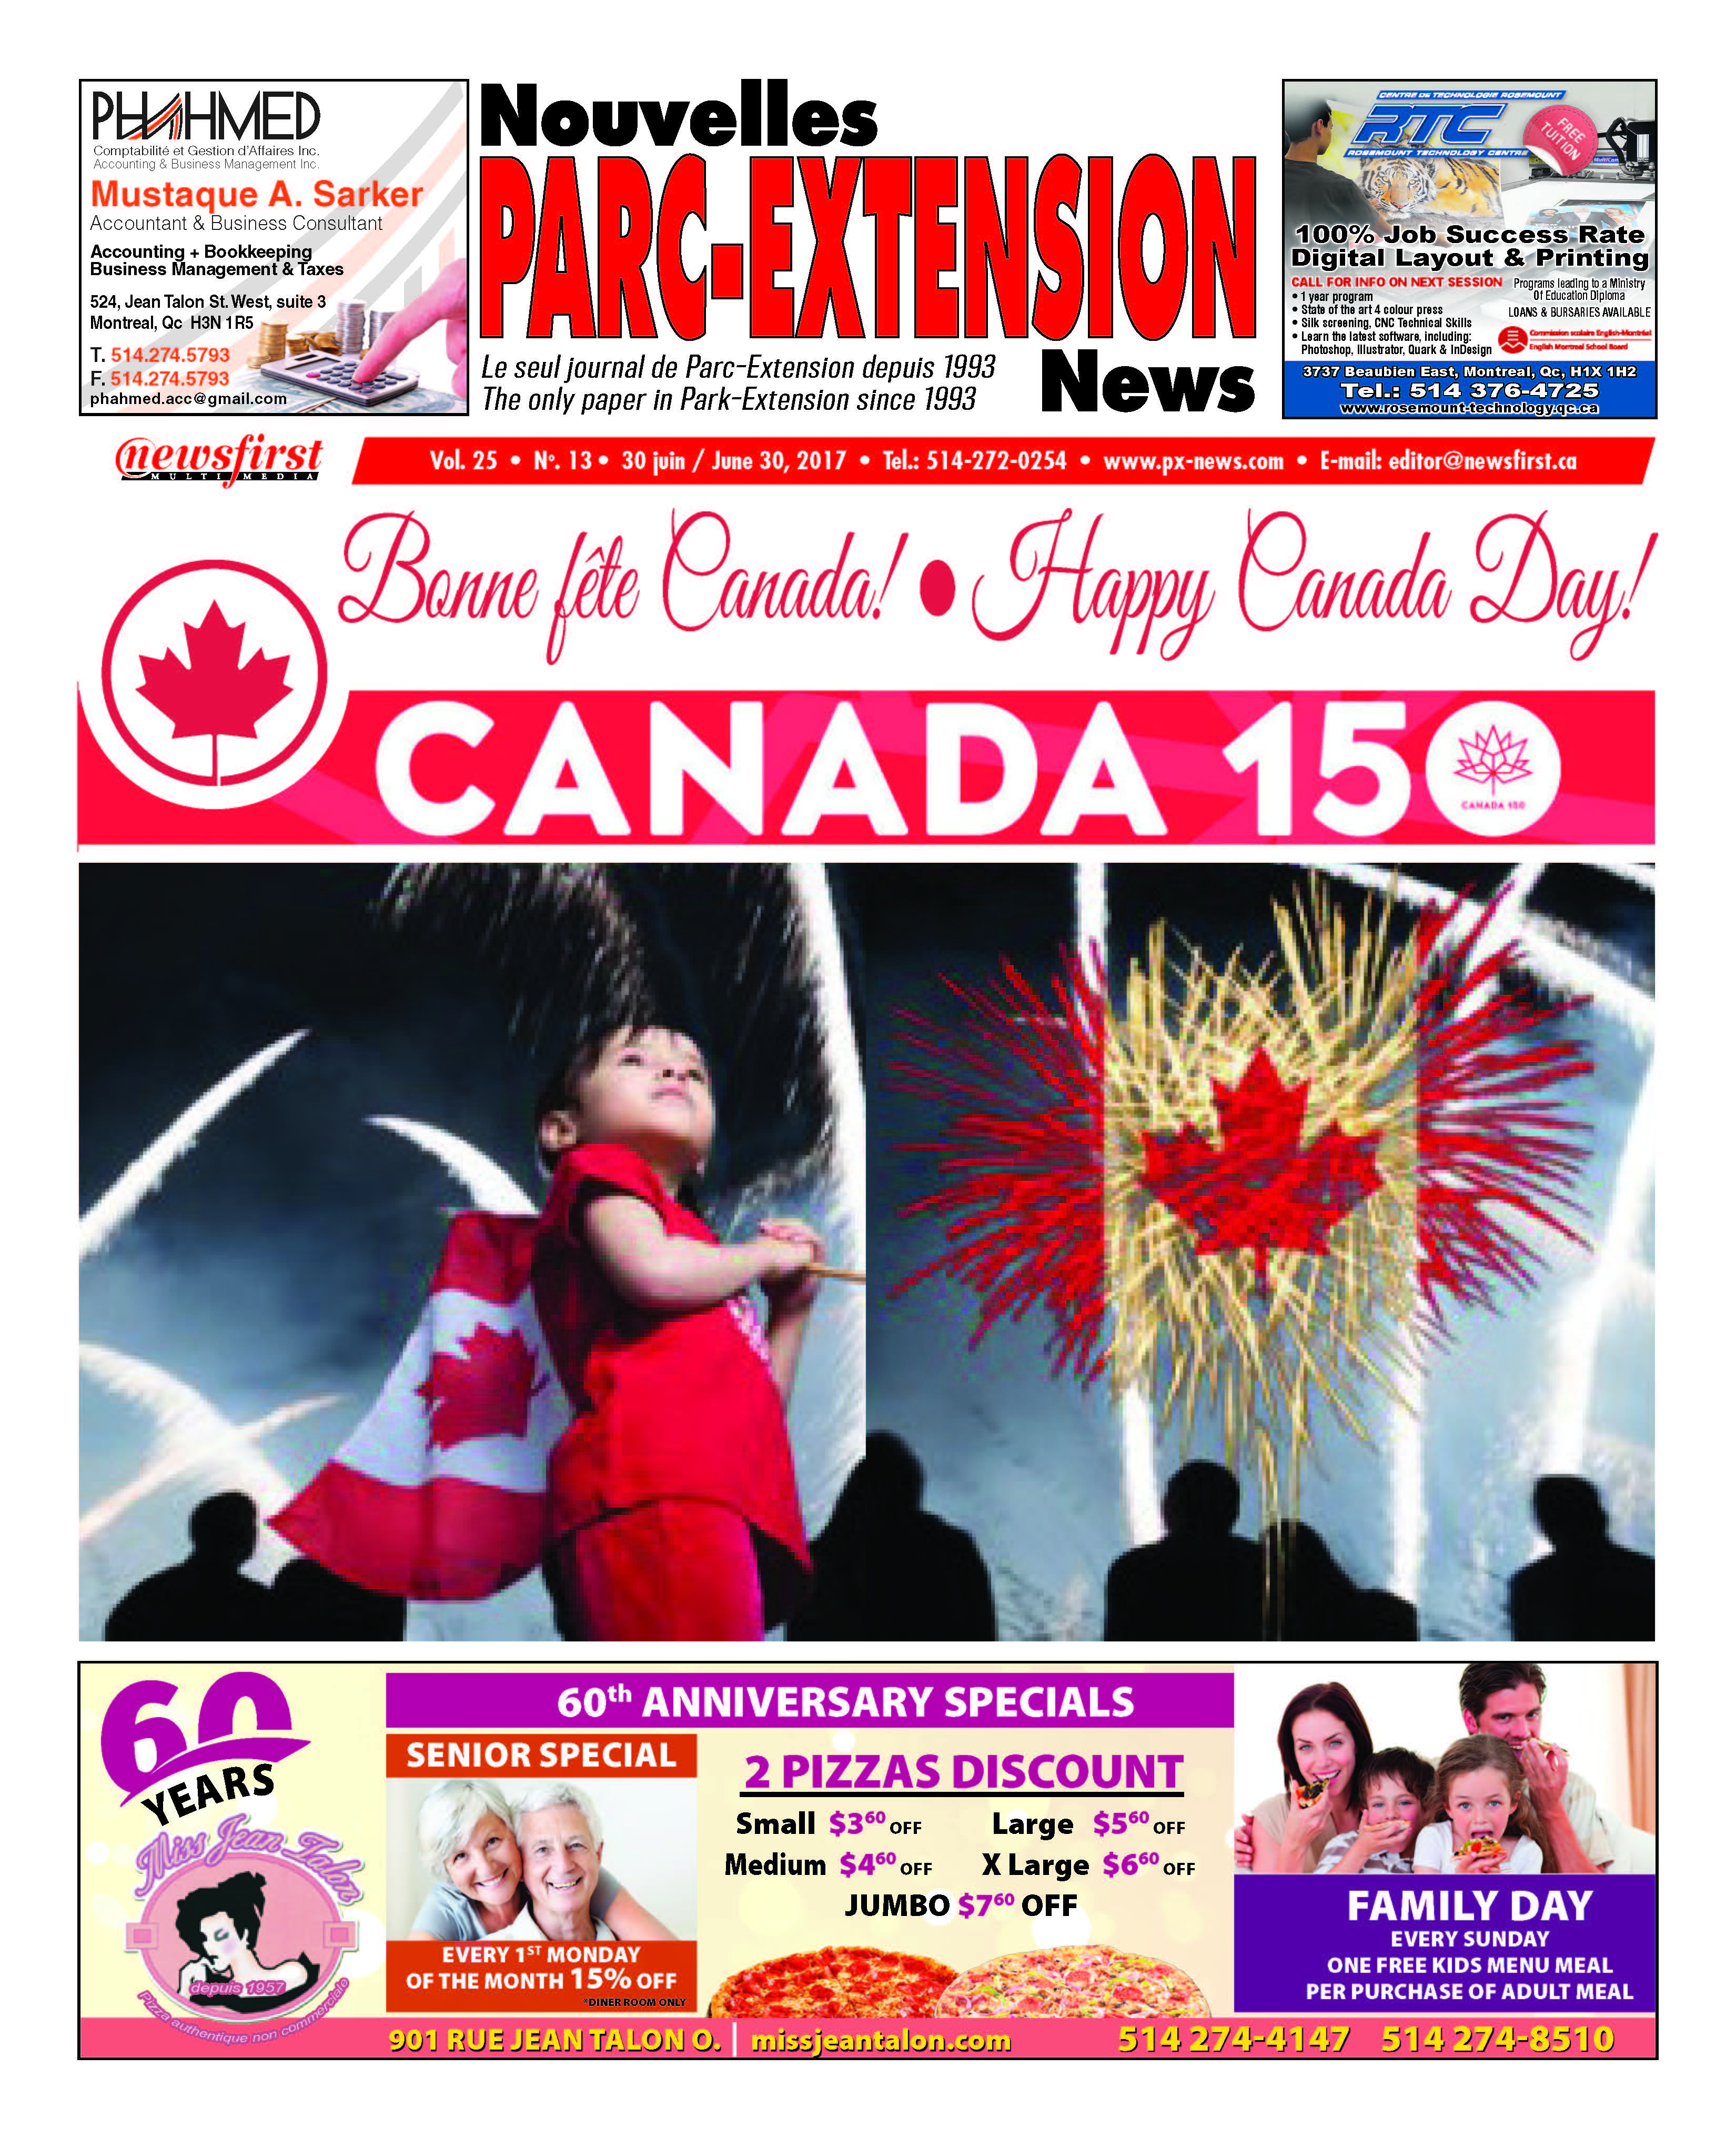 Front page image of the Parc-Extension News Volume 25-13